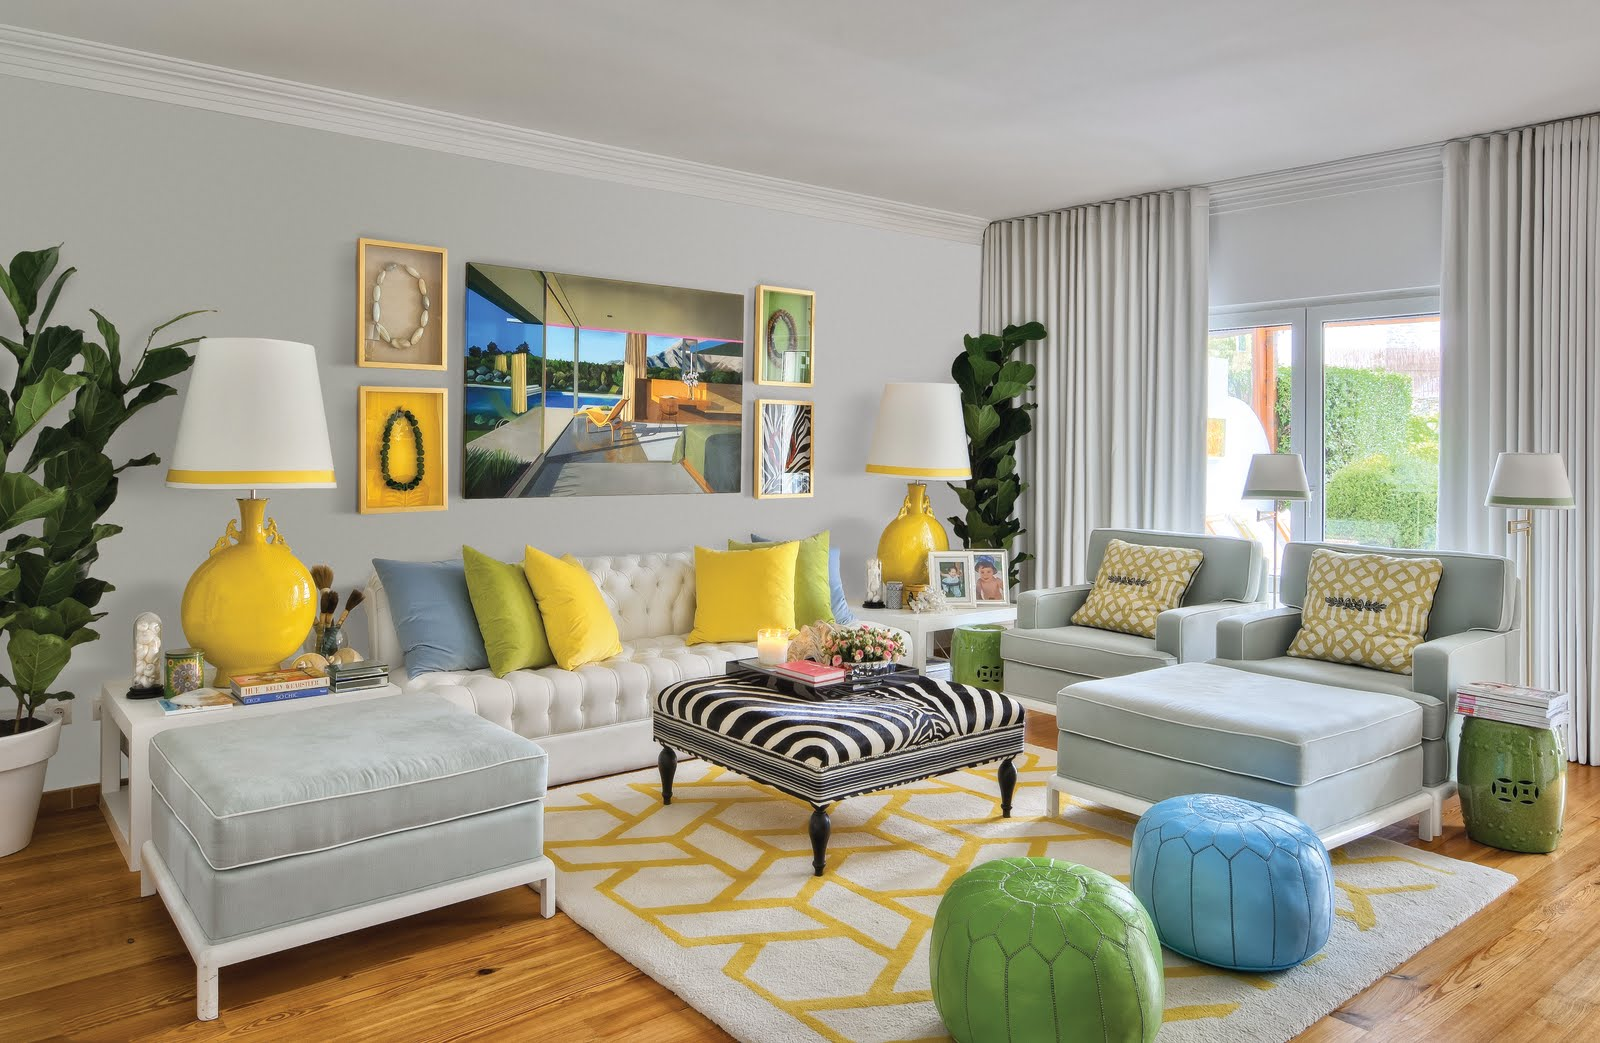 White Collection By Maria Barros 15610 on Yellow And Gray Walls With Teal Accents